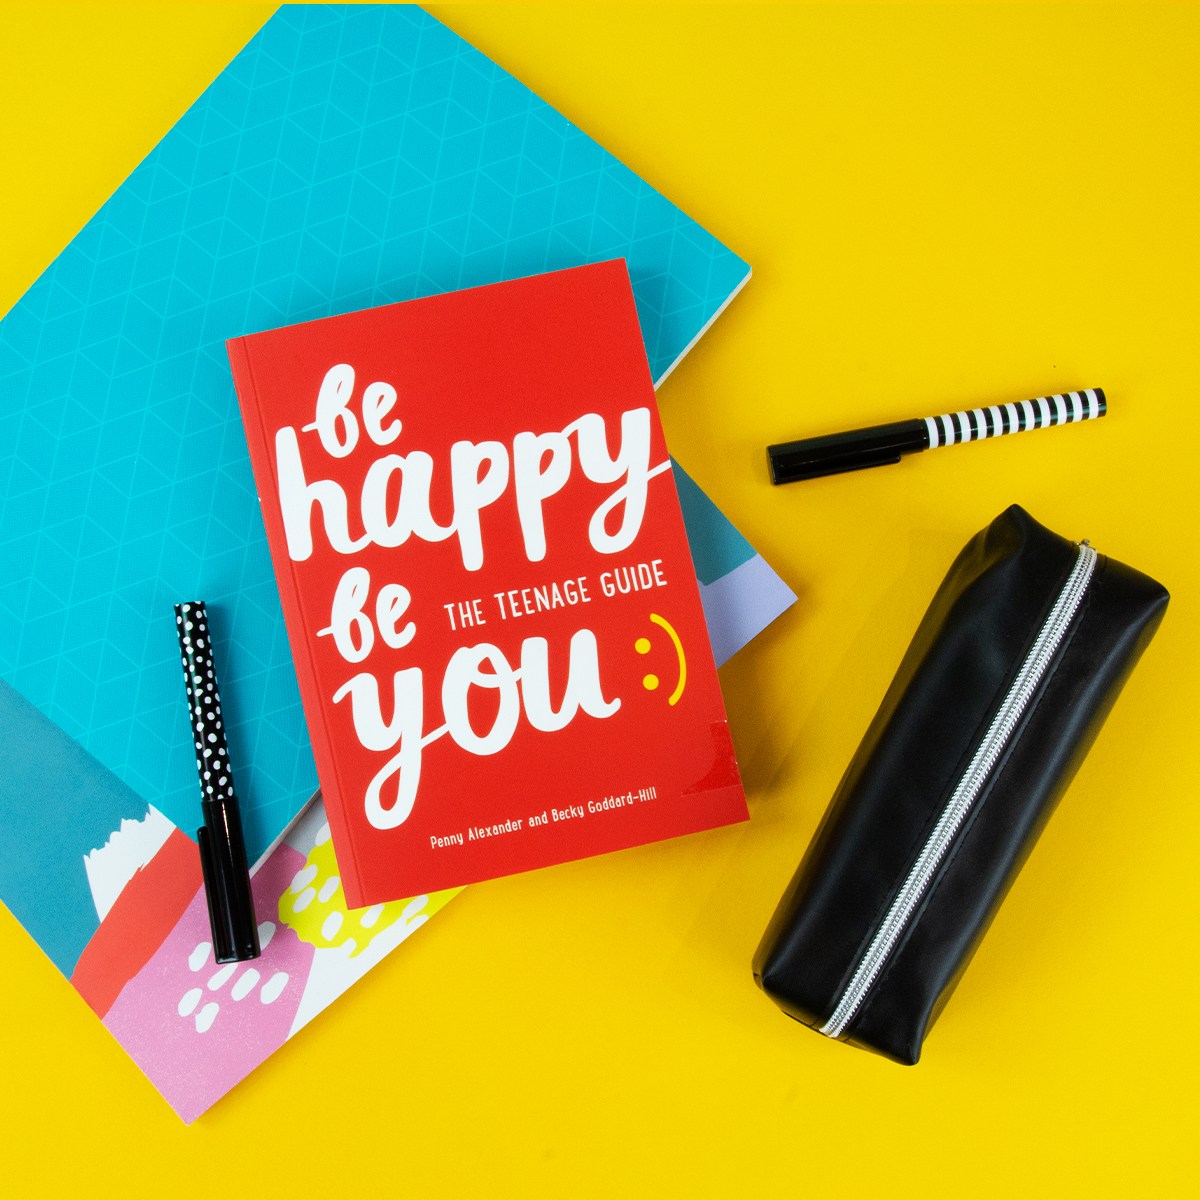 Be Happy Be You - a teenage guide to happiness